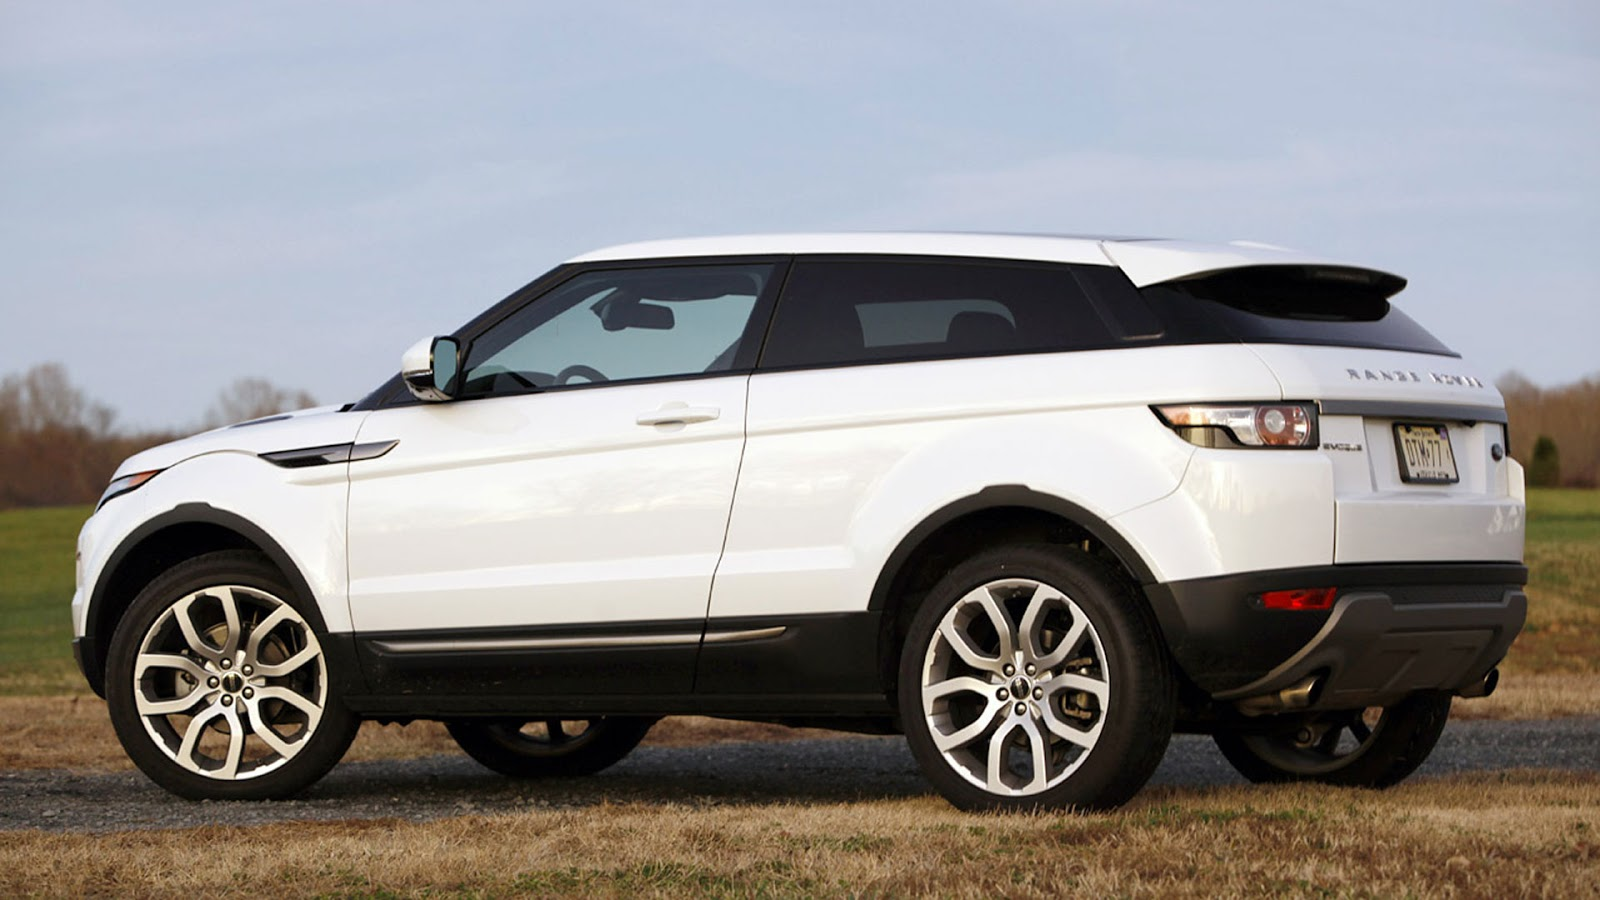 range rover evoque 2013 price 2014 range rover evoque. Black Bedroom Furniture Sets. Home Design Ideas